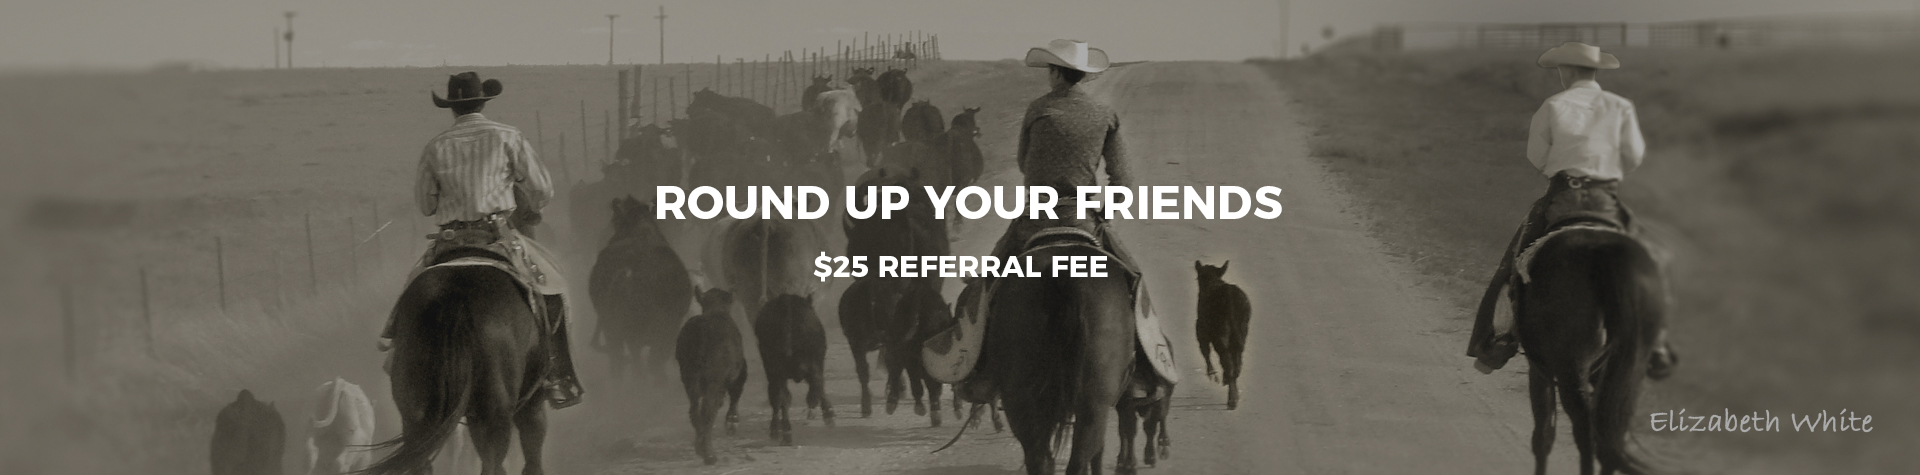 Round up your friends!